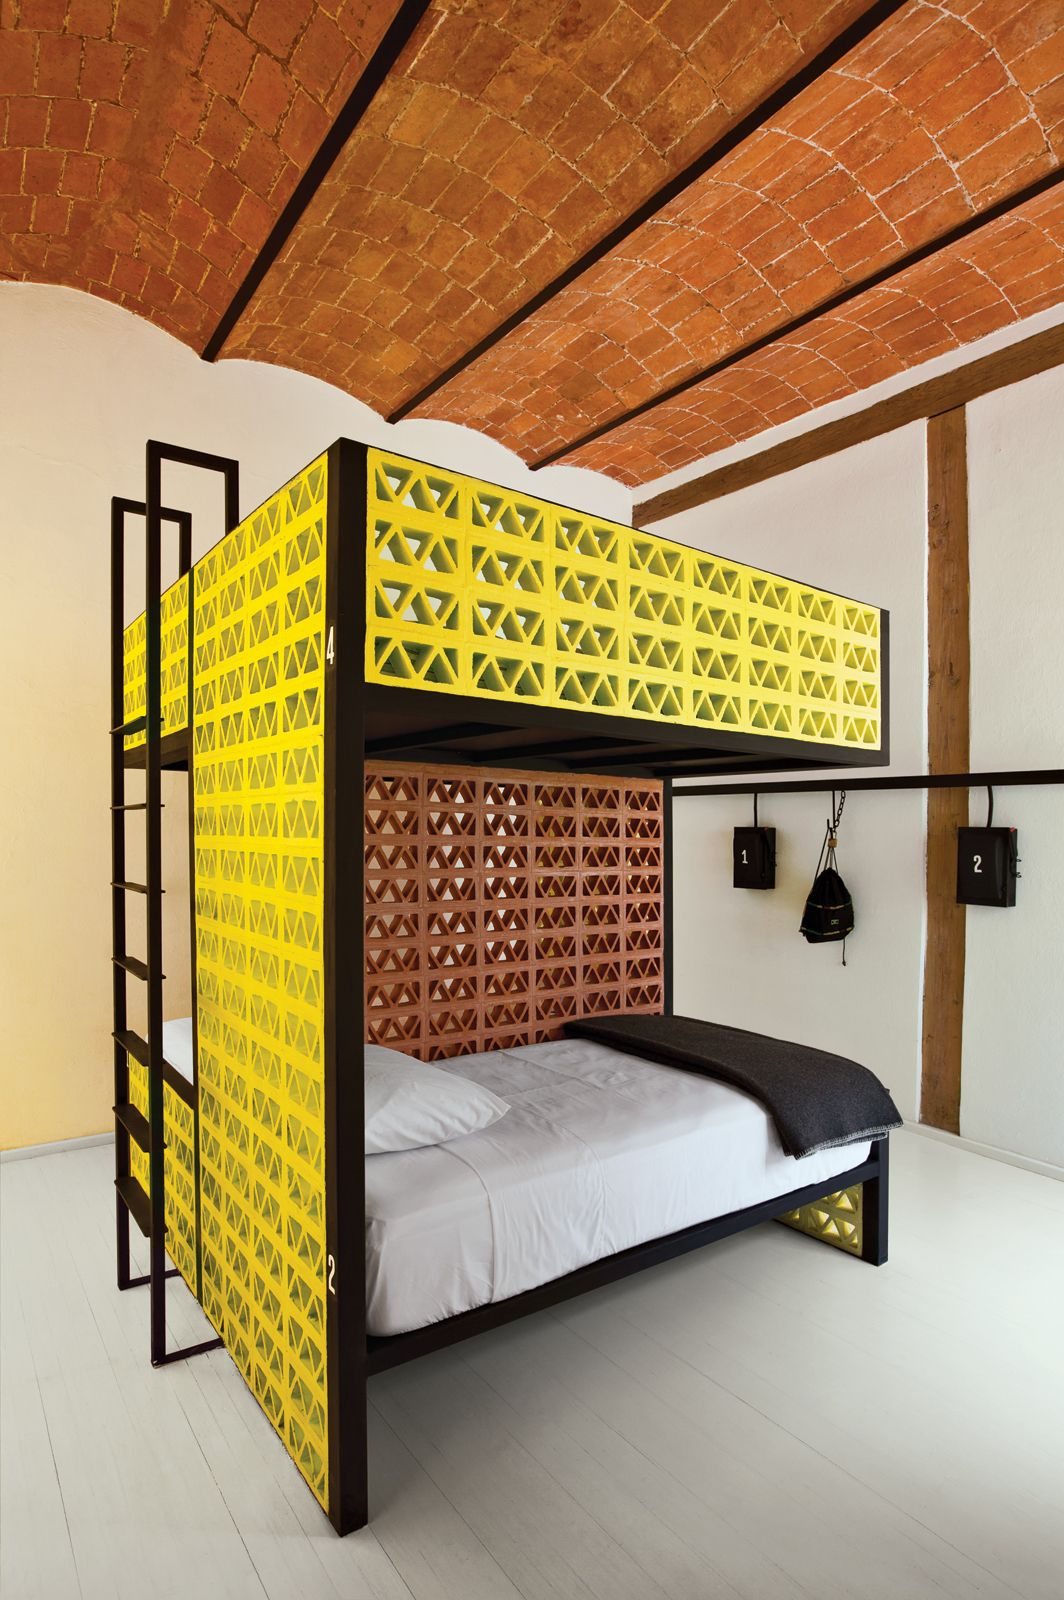 Search Canopy Bed From Great Modern Hotels Budget Hotelsmexico Citykid